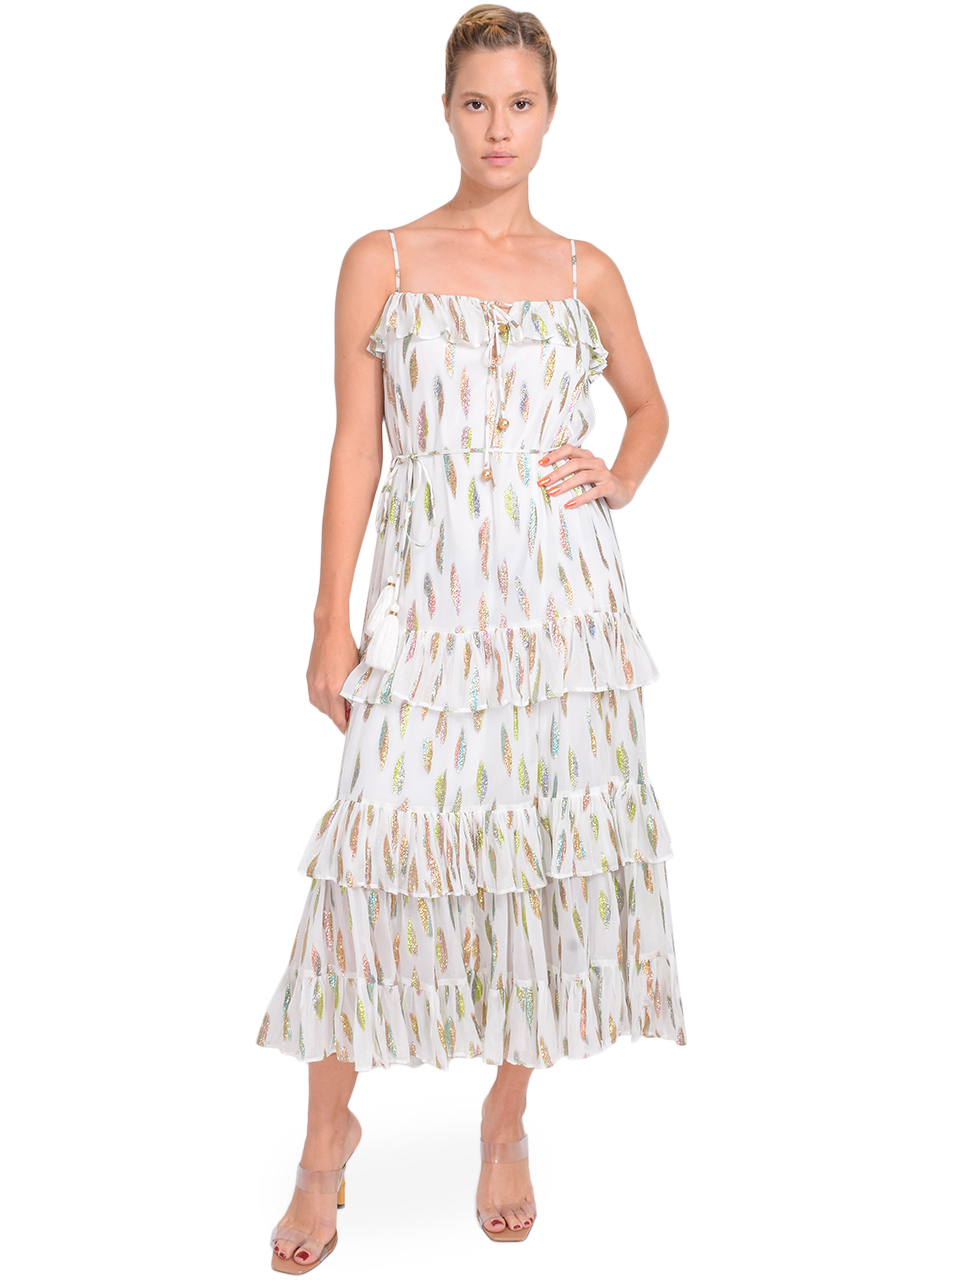 Karina Grimaldi Lori Metallic Print Dress with White Leaf Full Outfit